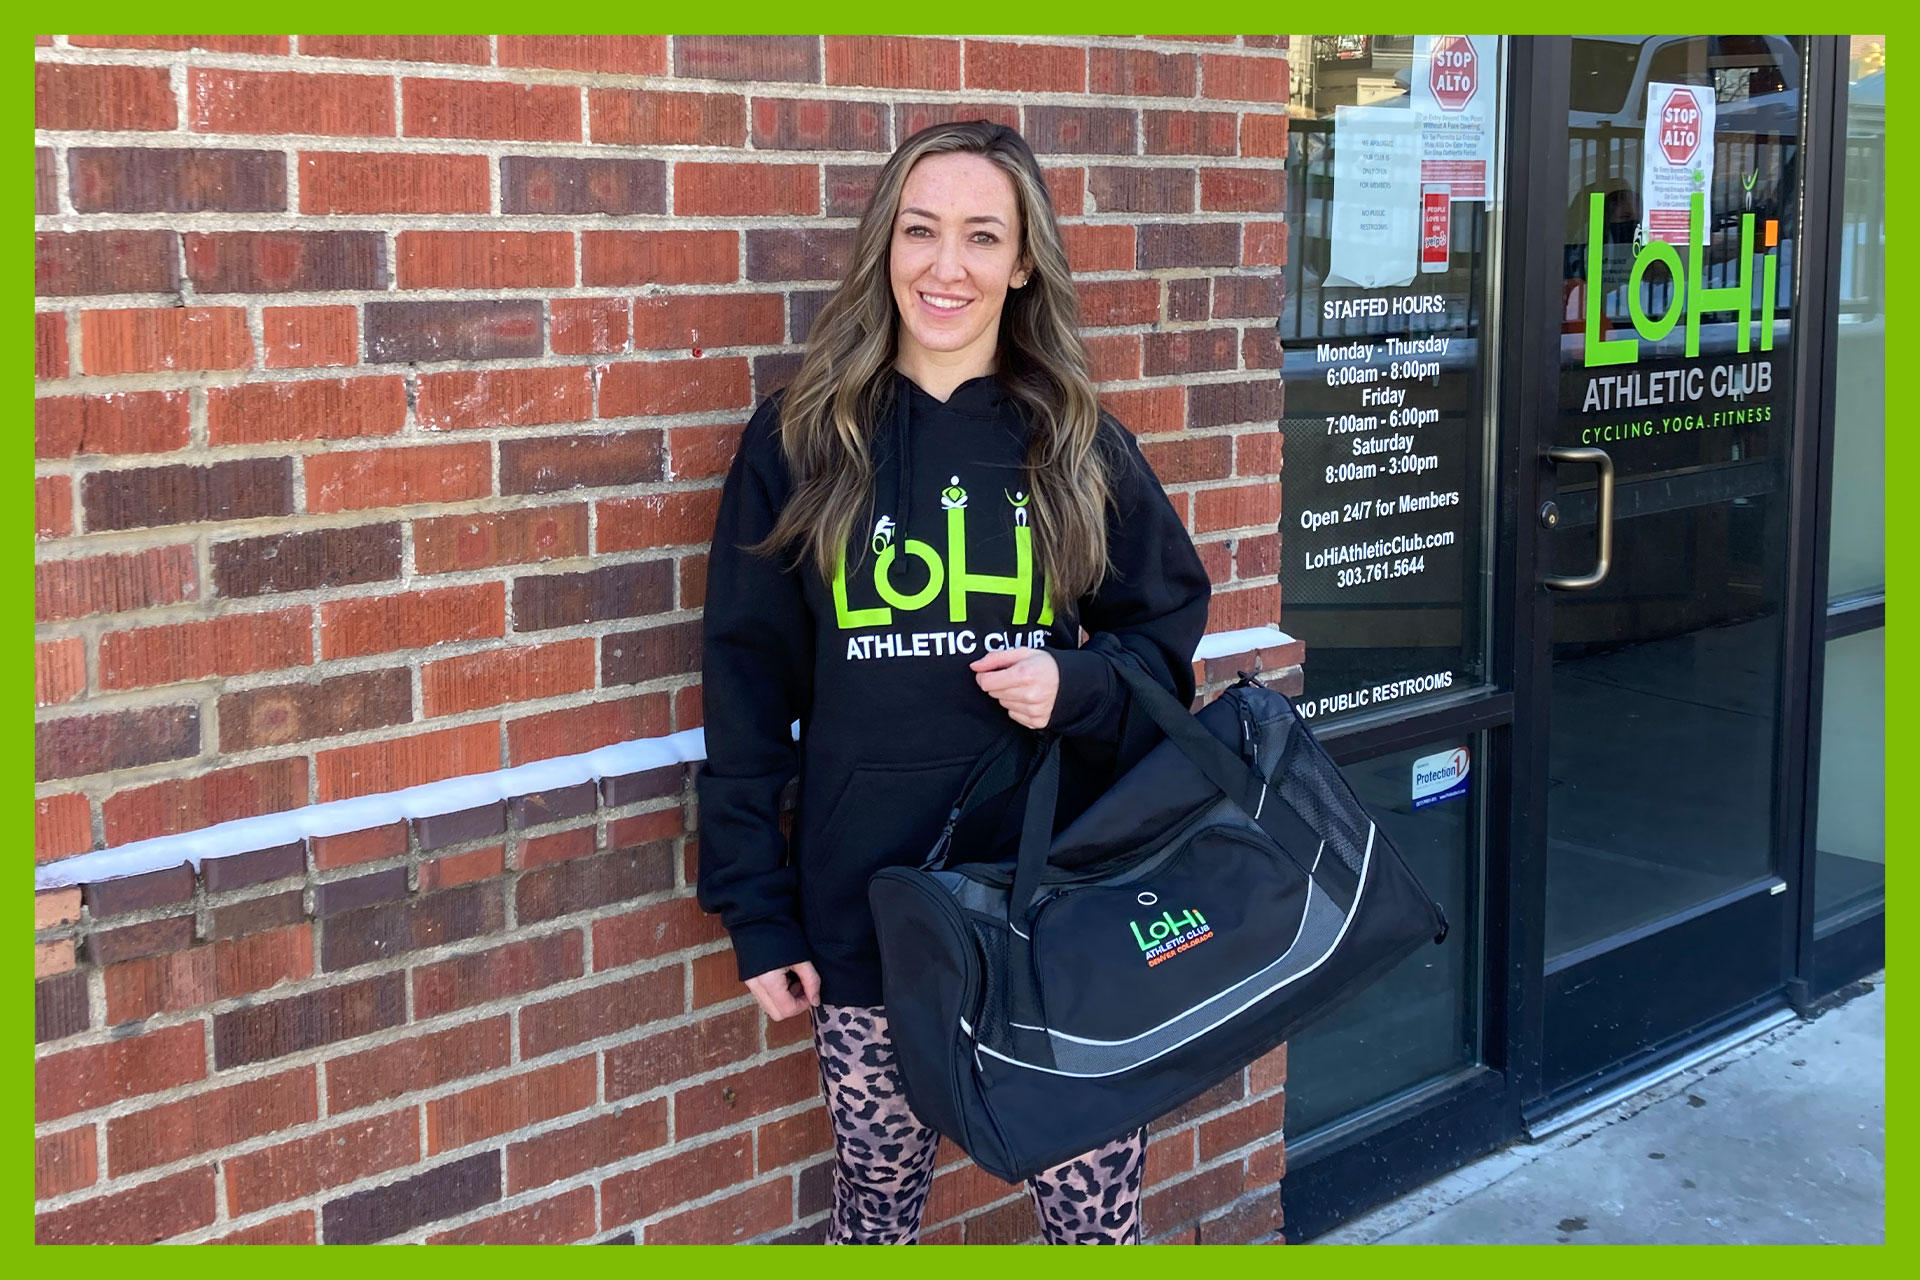 50% off Enrollment fees, first month FREE, and choose from a FREE hoodie or gym bag while supplies last at Lohi Athletic Club in Denver, Colorado.